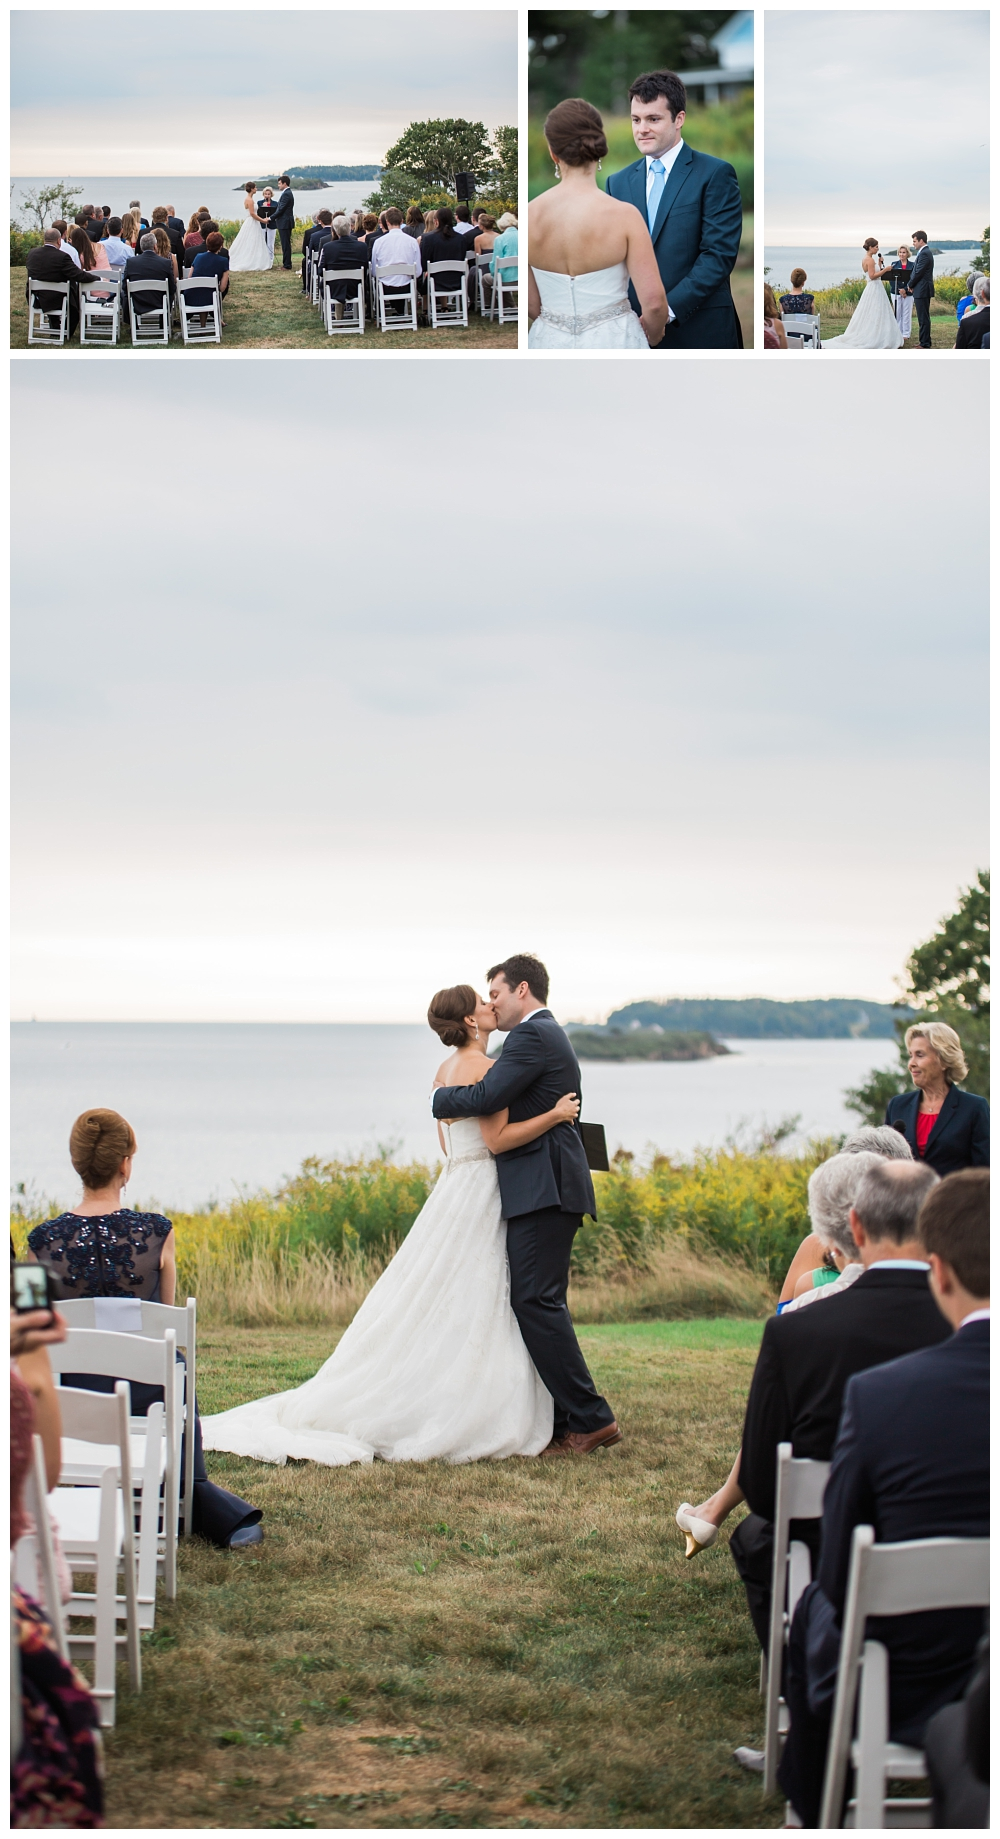 Maine Wedding Photographer Harpswell Ceremony I do